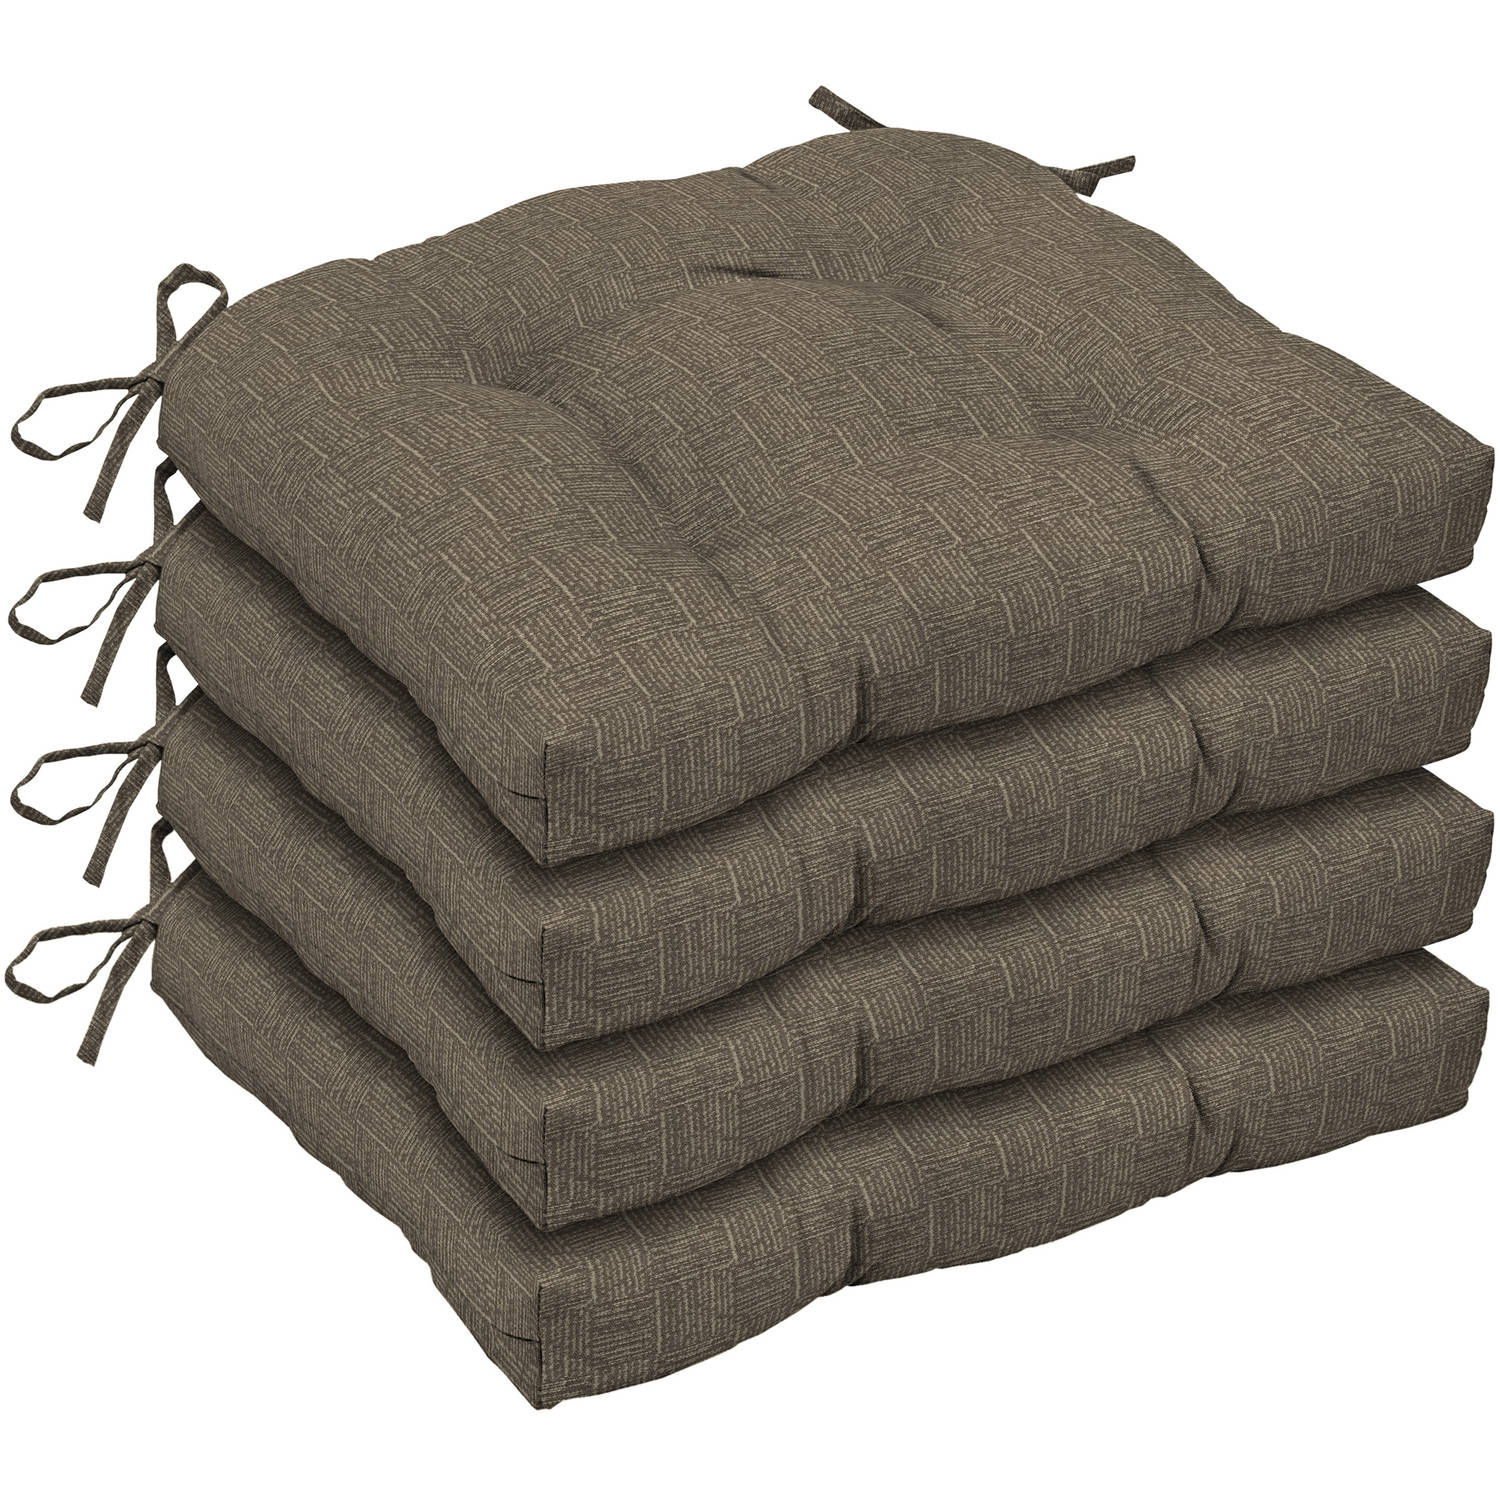 Arden Outdoors Brown Woven Wicker Seat Cushion, Set of 4